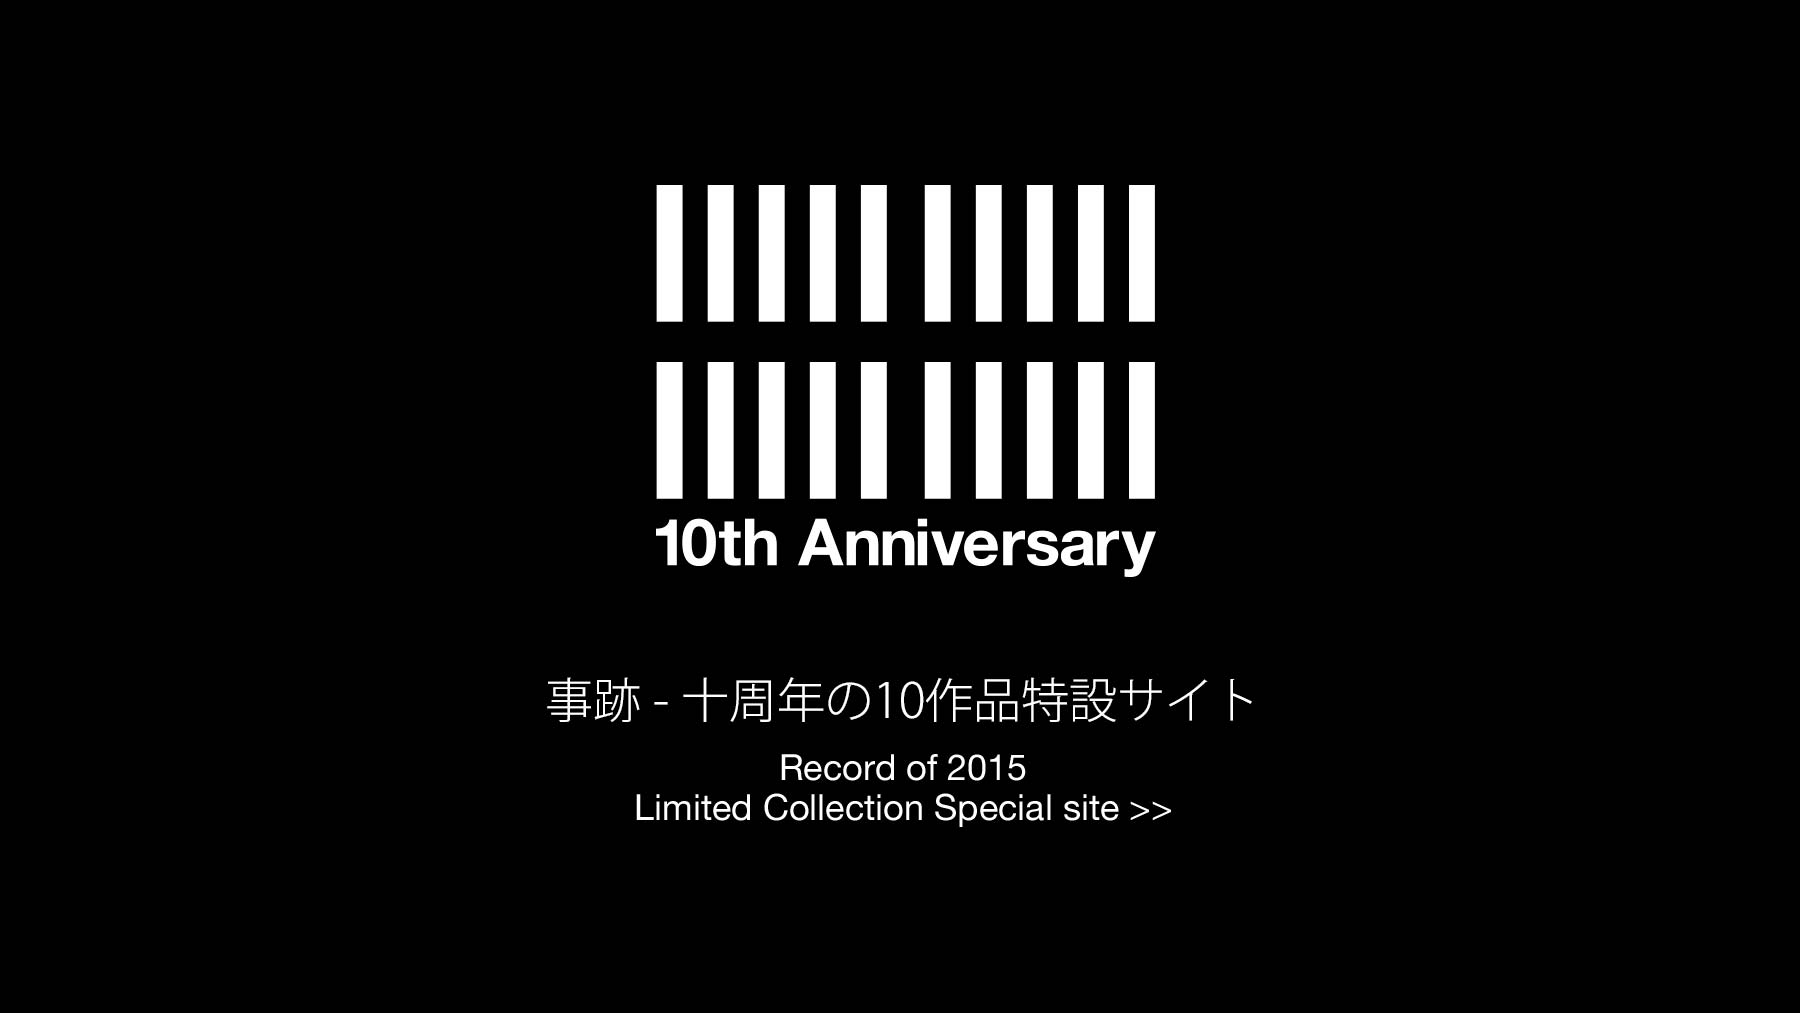 [PHOTO:Shizukuya 10th Anniversary Limited Collection]